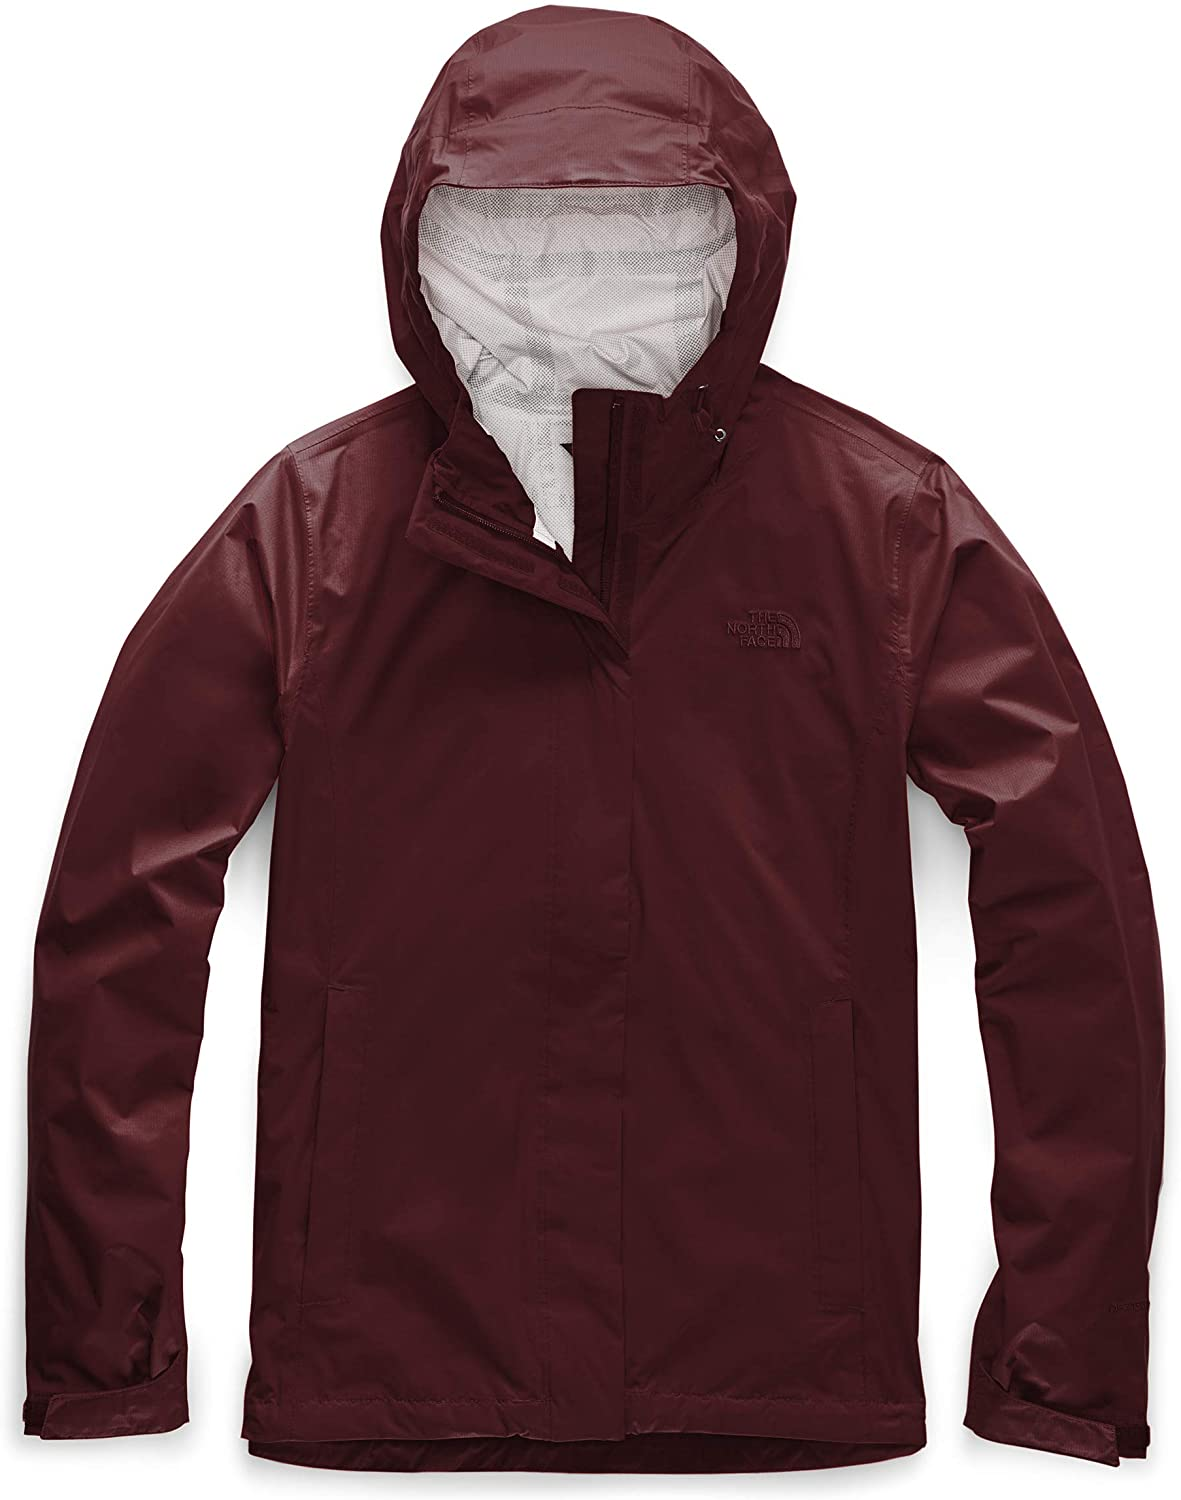 Womens The North Face Venture 2 Jacket Deep Garnet Red